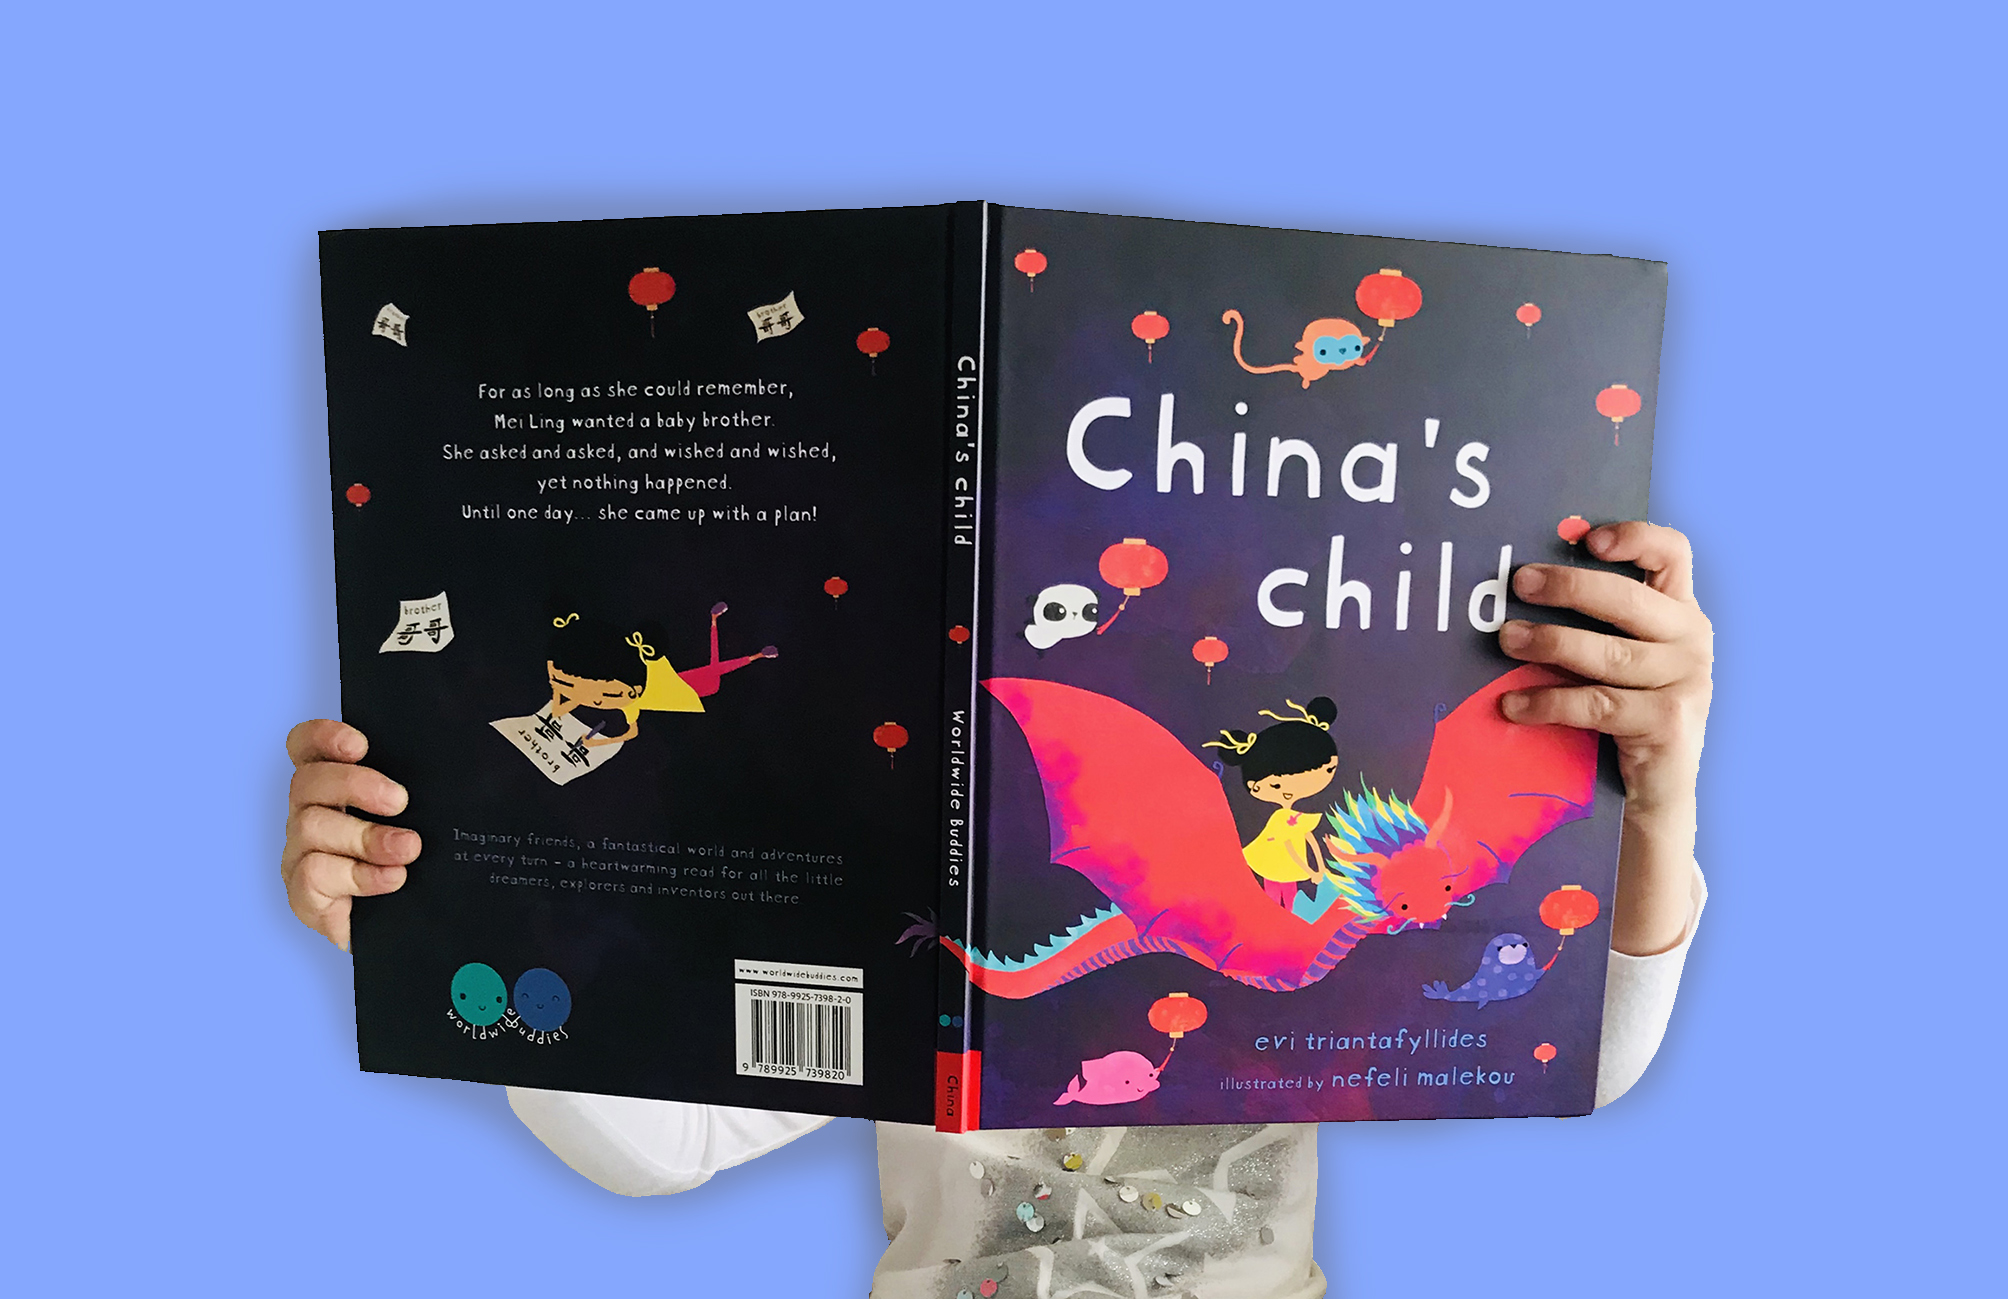 worldwide_buddies_china_book_cover_color.jpg